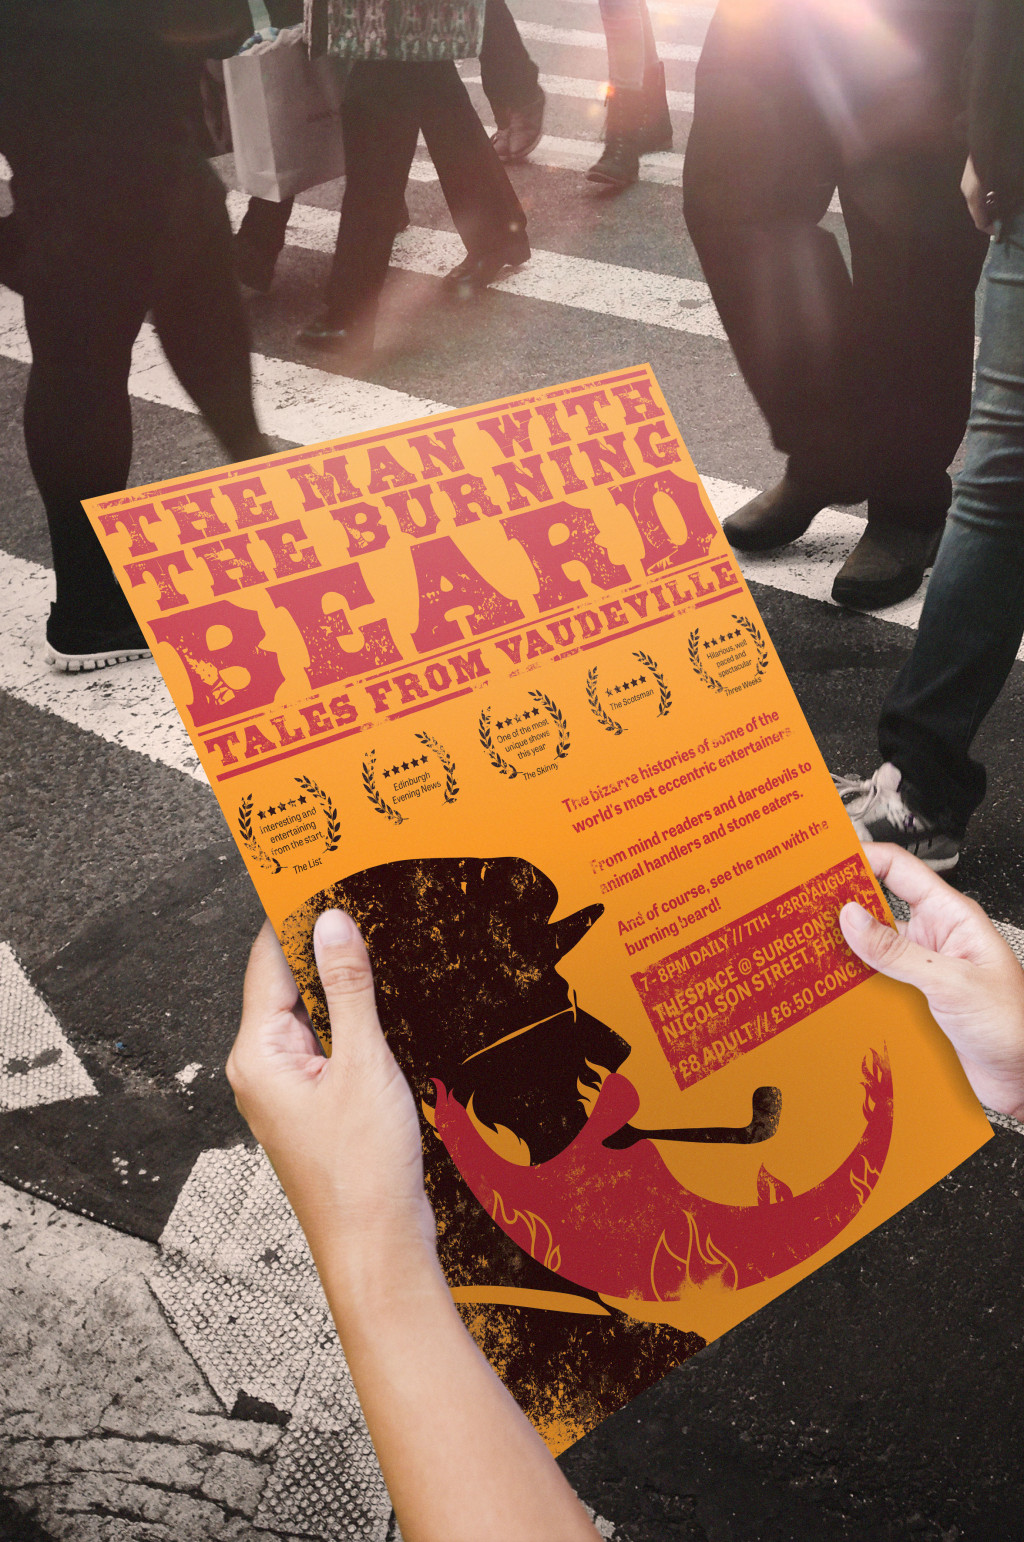 The Man With The Burning Beard - Poster